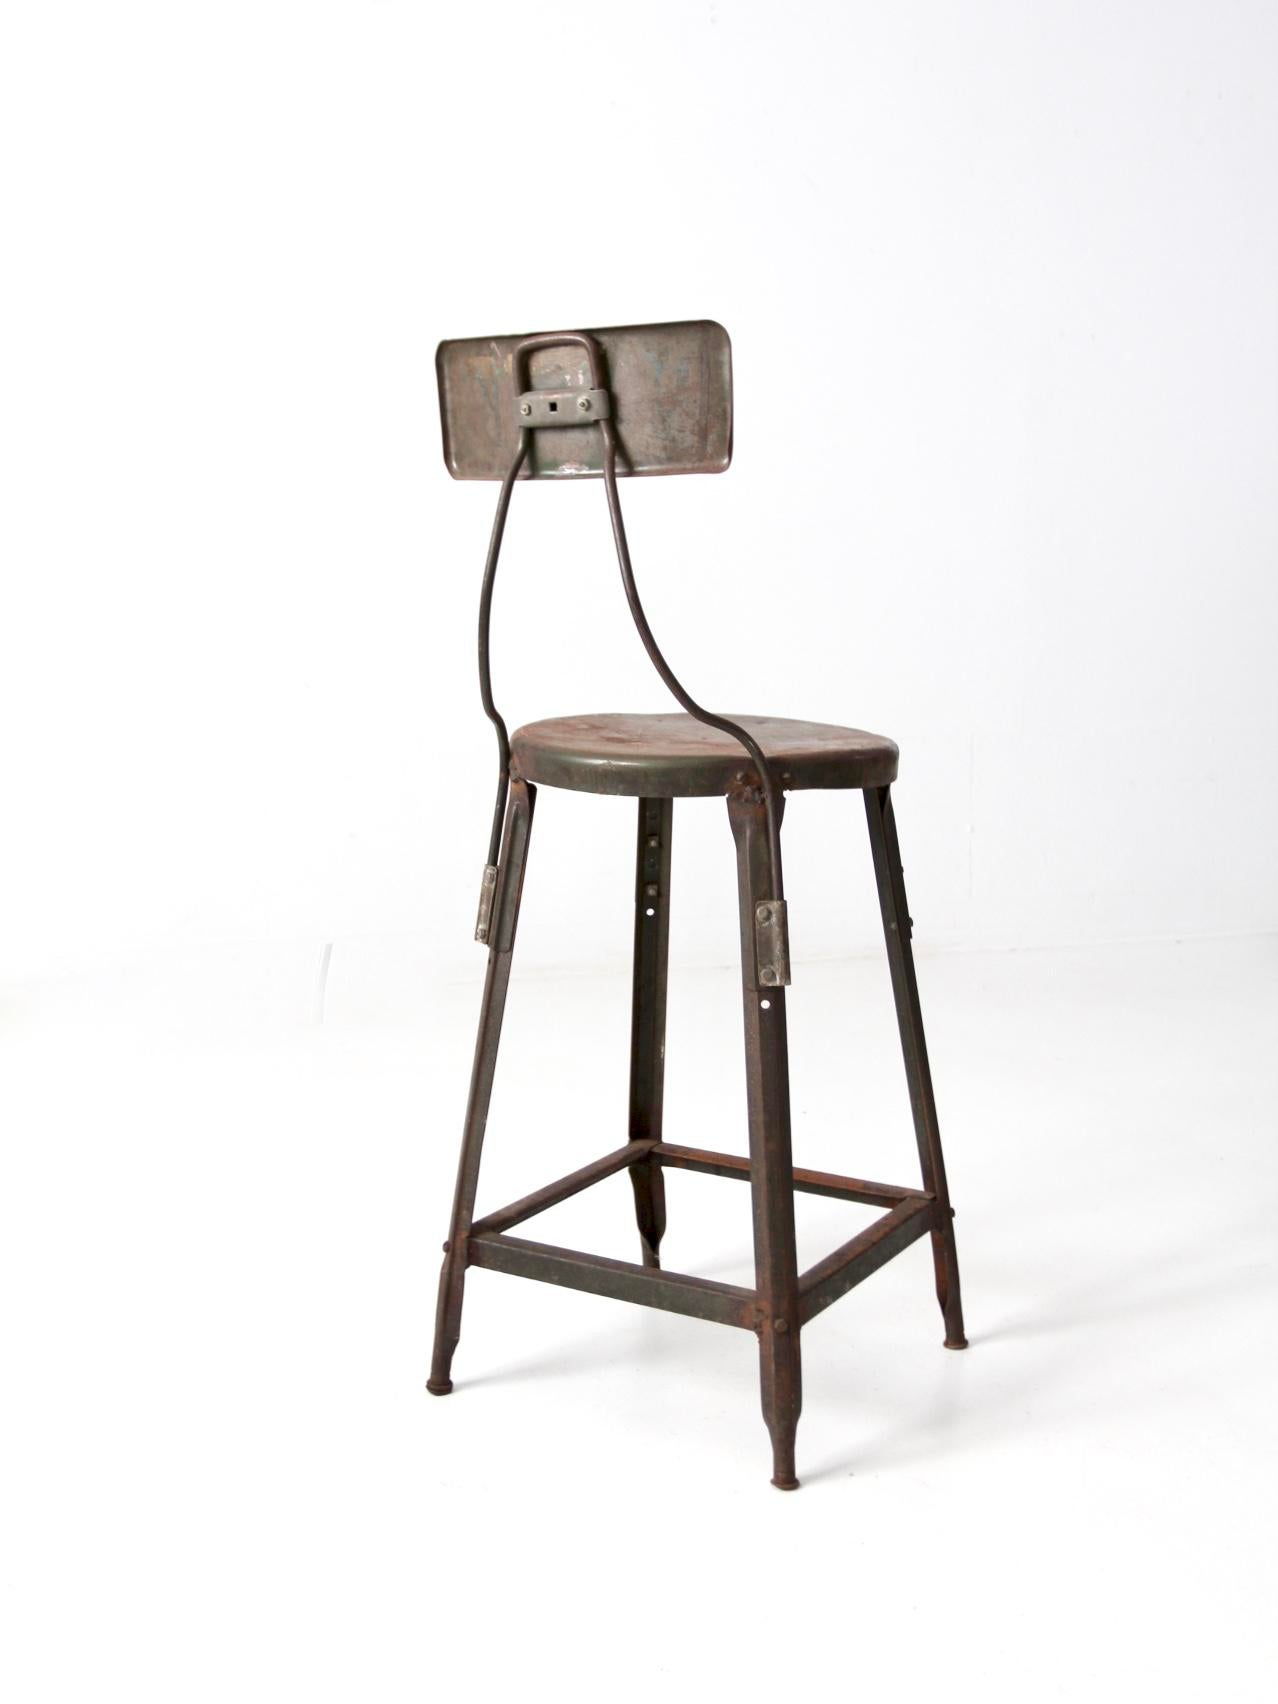 Inspirational Industrial Drafting Stool with Back